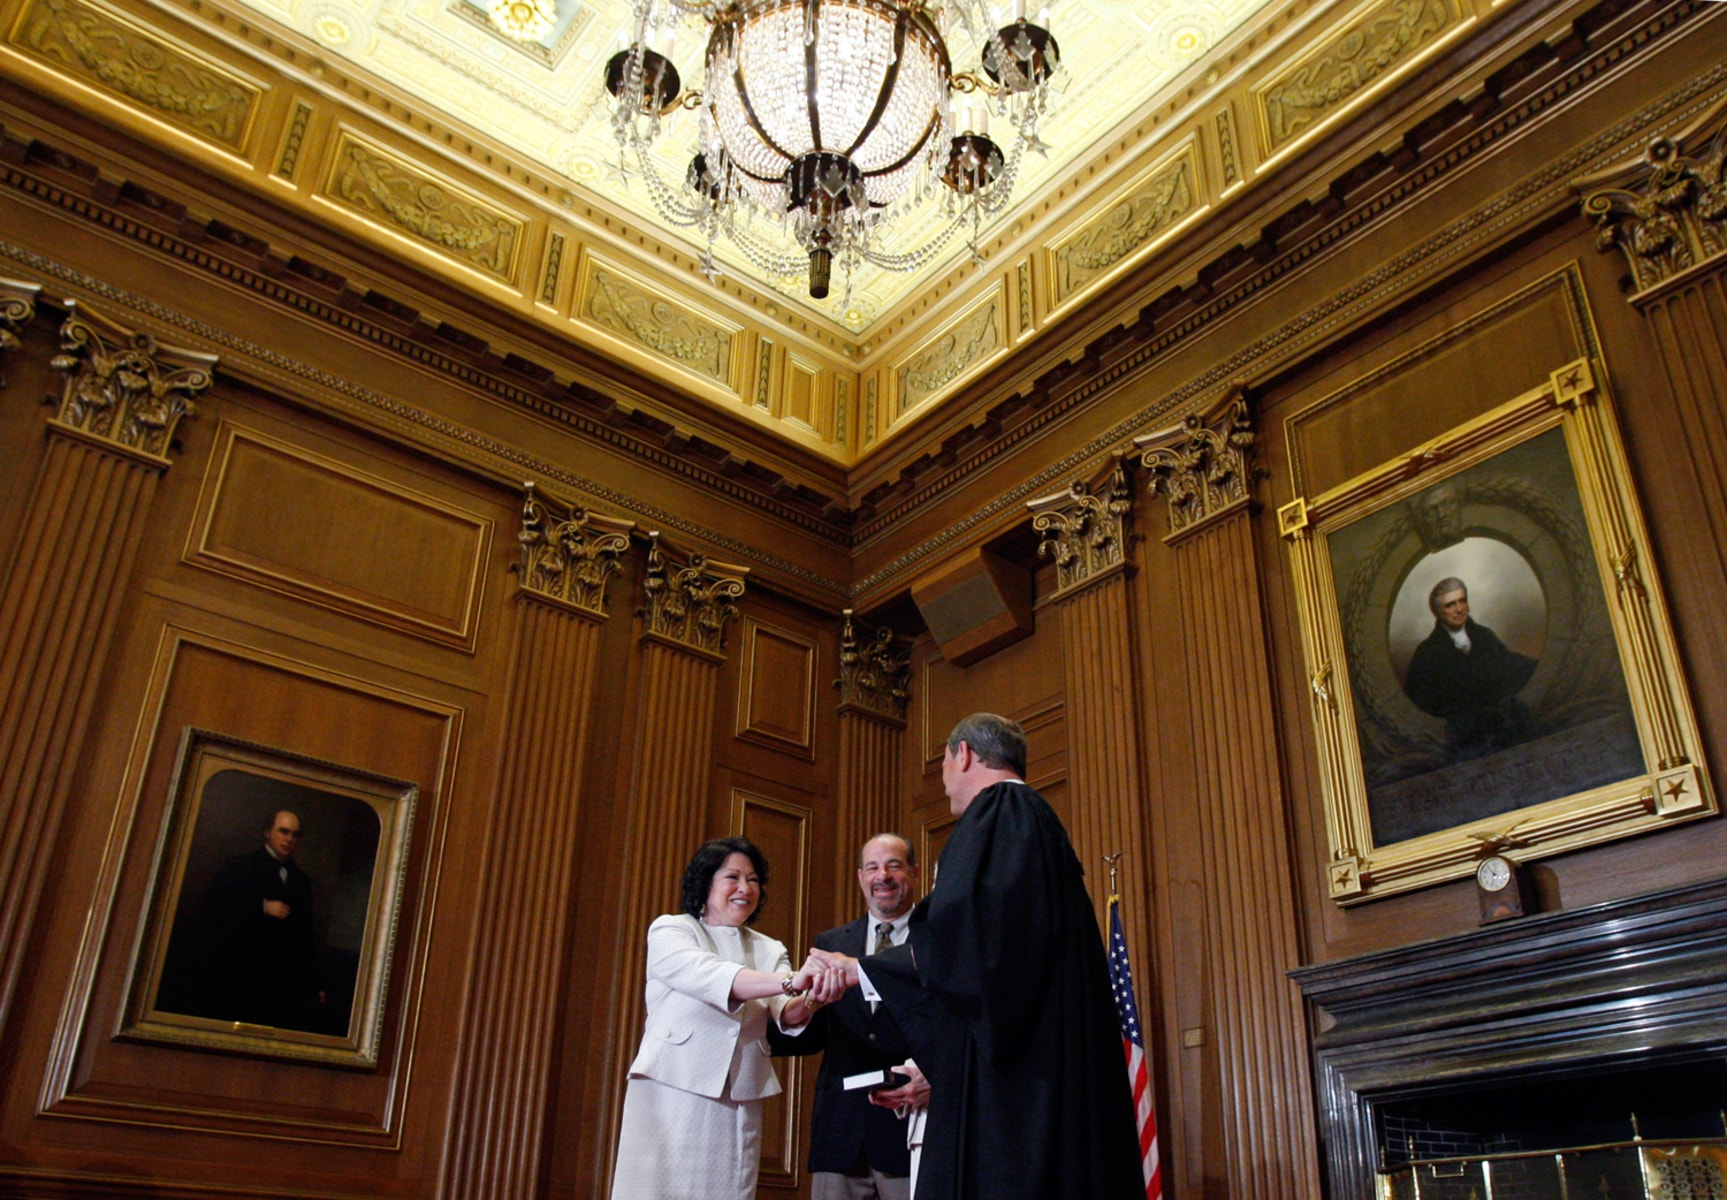 Image: Newly sworn-in U.S. Supreme Court Justice Sotomayor is congratulated by Chief Justice Roberts in Washington